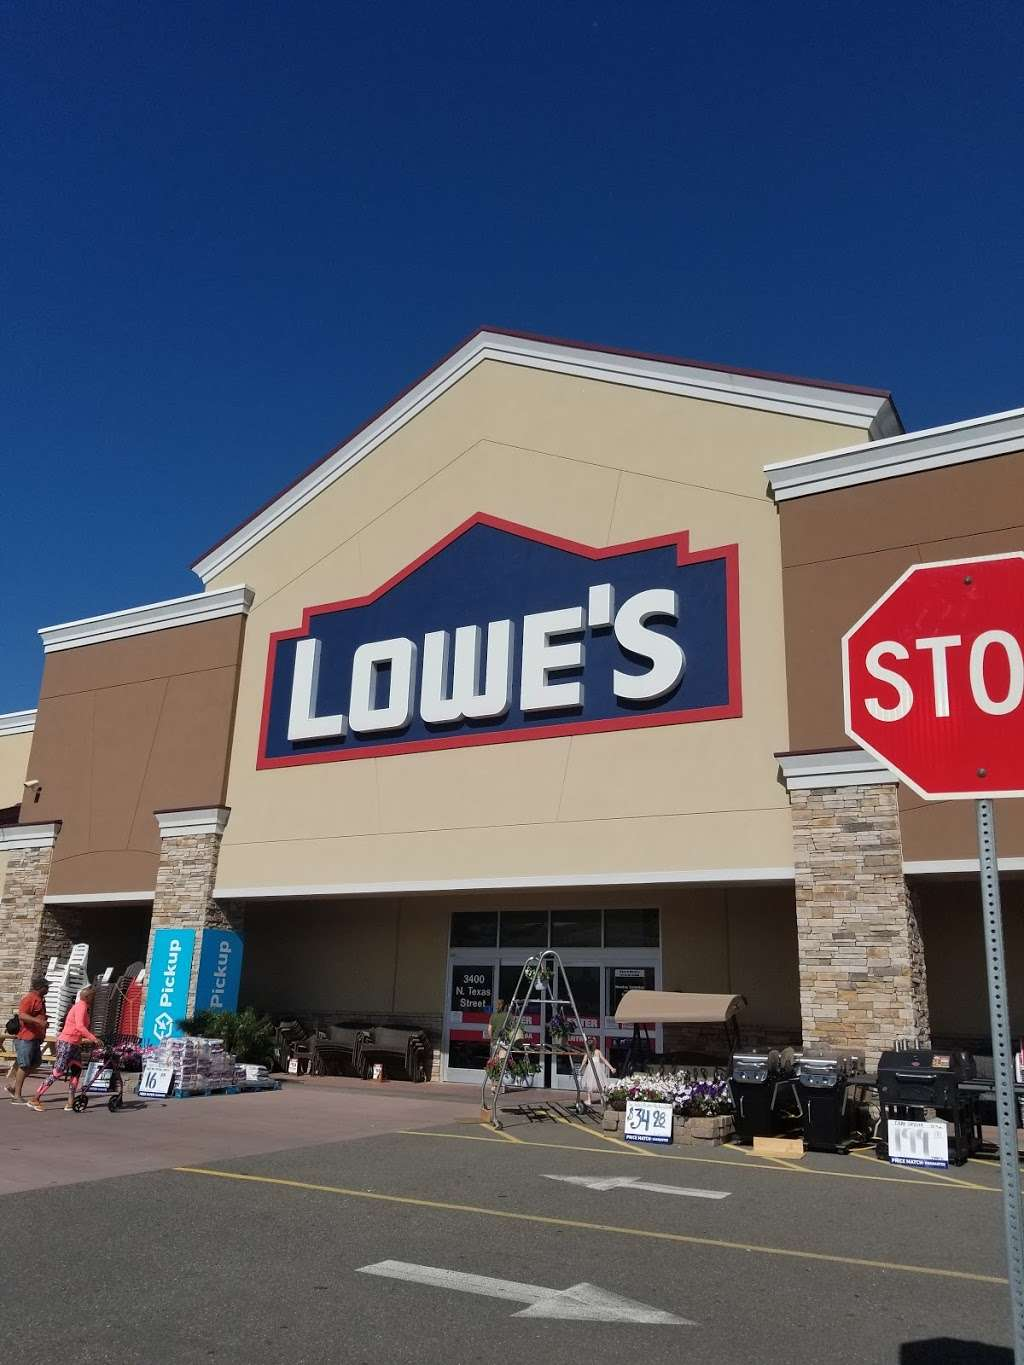 Lowes Home Improvement - hardware store  | Photo 9 of 10 | Address: 3400 N Texas St, Fairfield, CA 94533, USA | Phone: (707) 207-2070